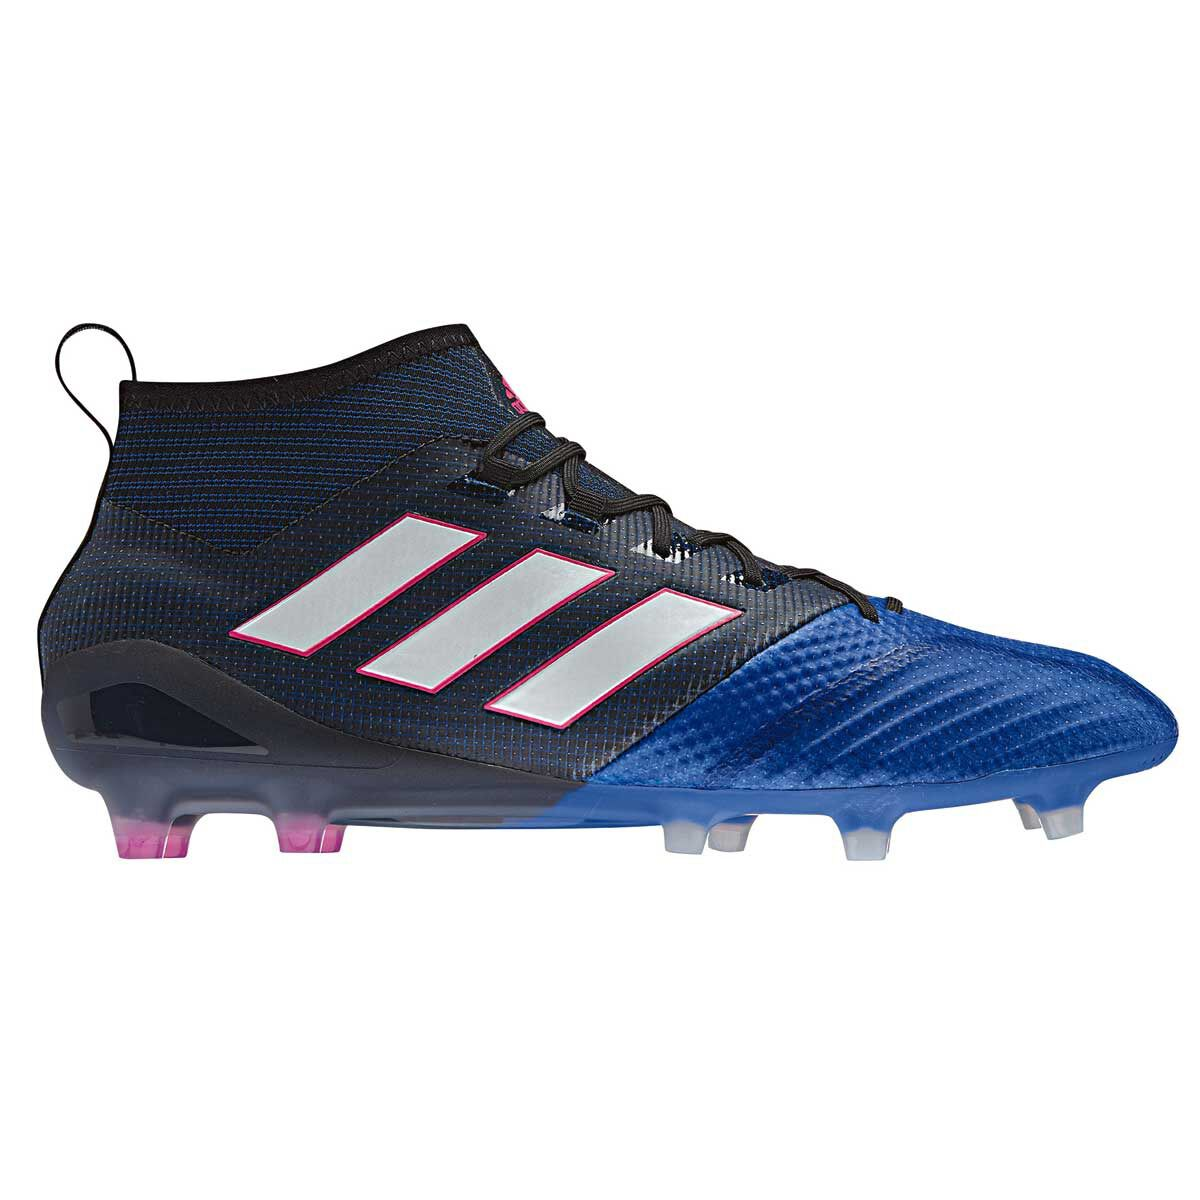 a8b337a40eb4 discount code for adidas ace black boots 50ceb 0d0e9